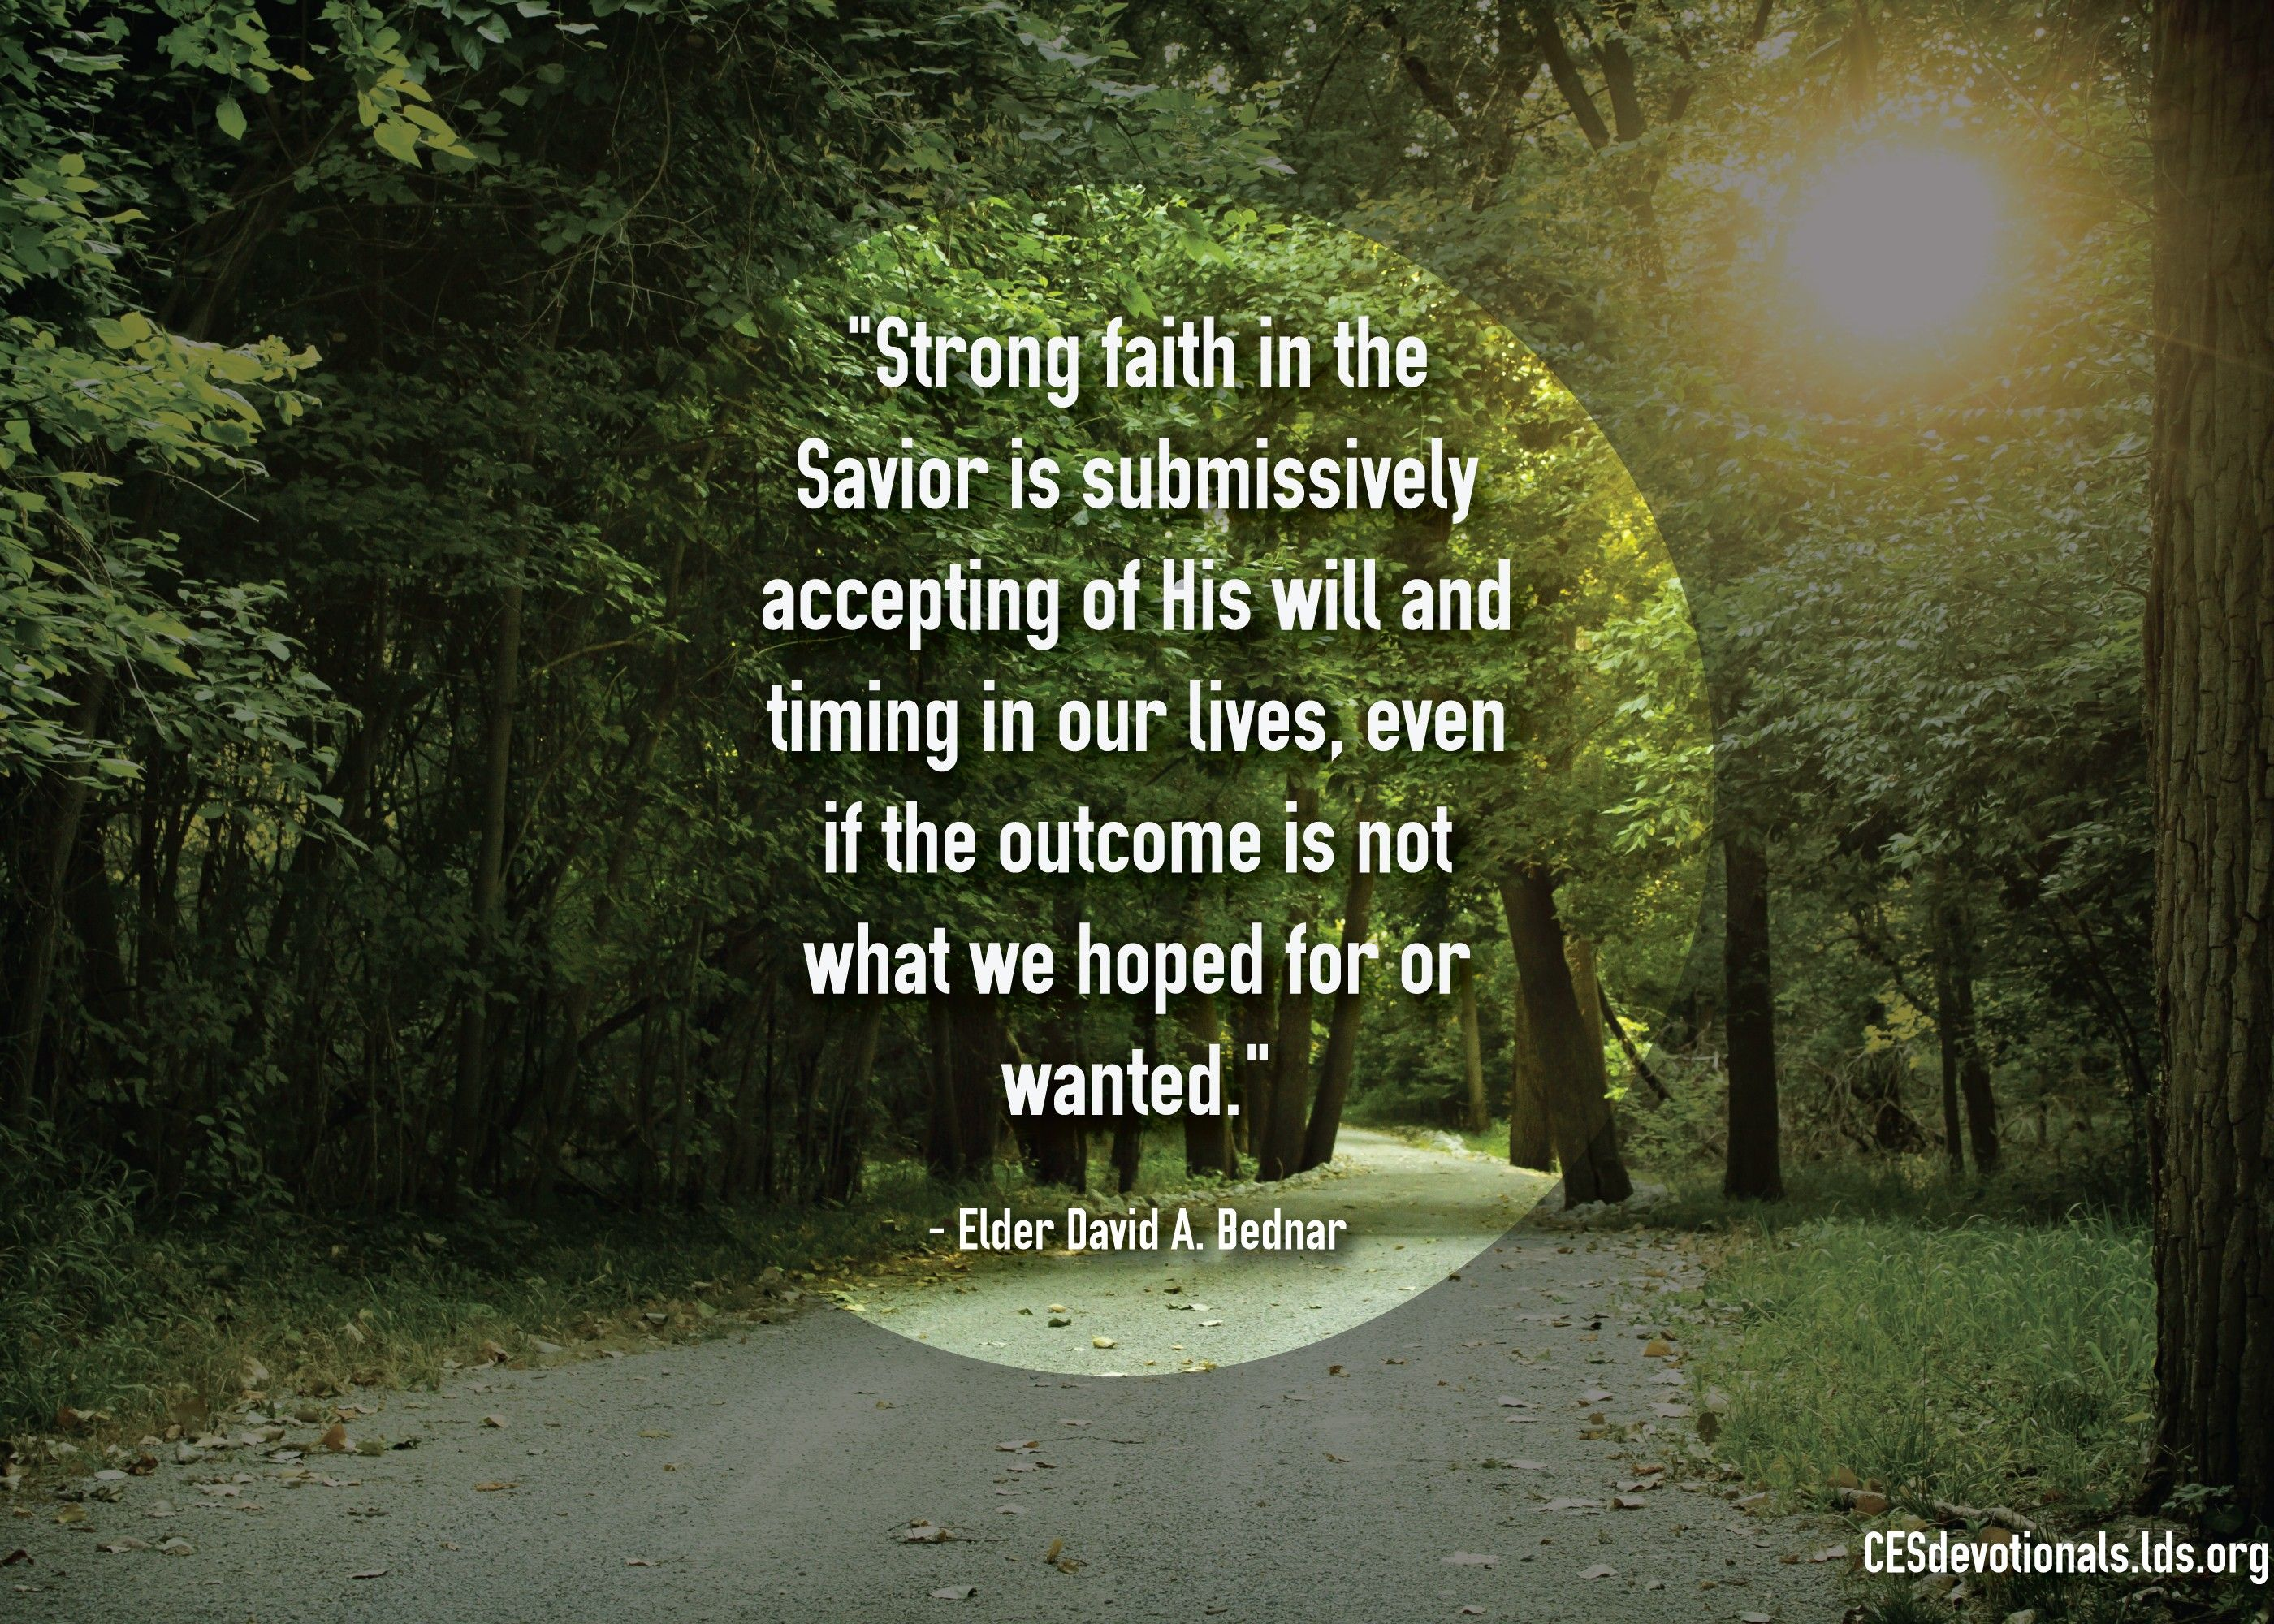 """Strong faith in the Savior is submissively accepting of His will and timing in our lives, even if the outcome is not what we hoped for or wanted.""—Elder David A. Bednar, ""That We Might 'Not … Shrink'"""